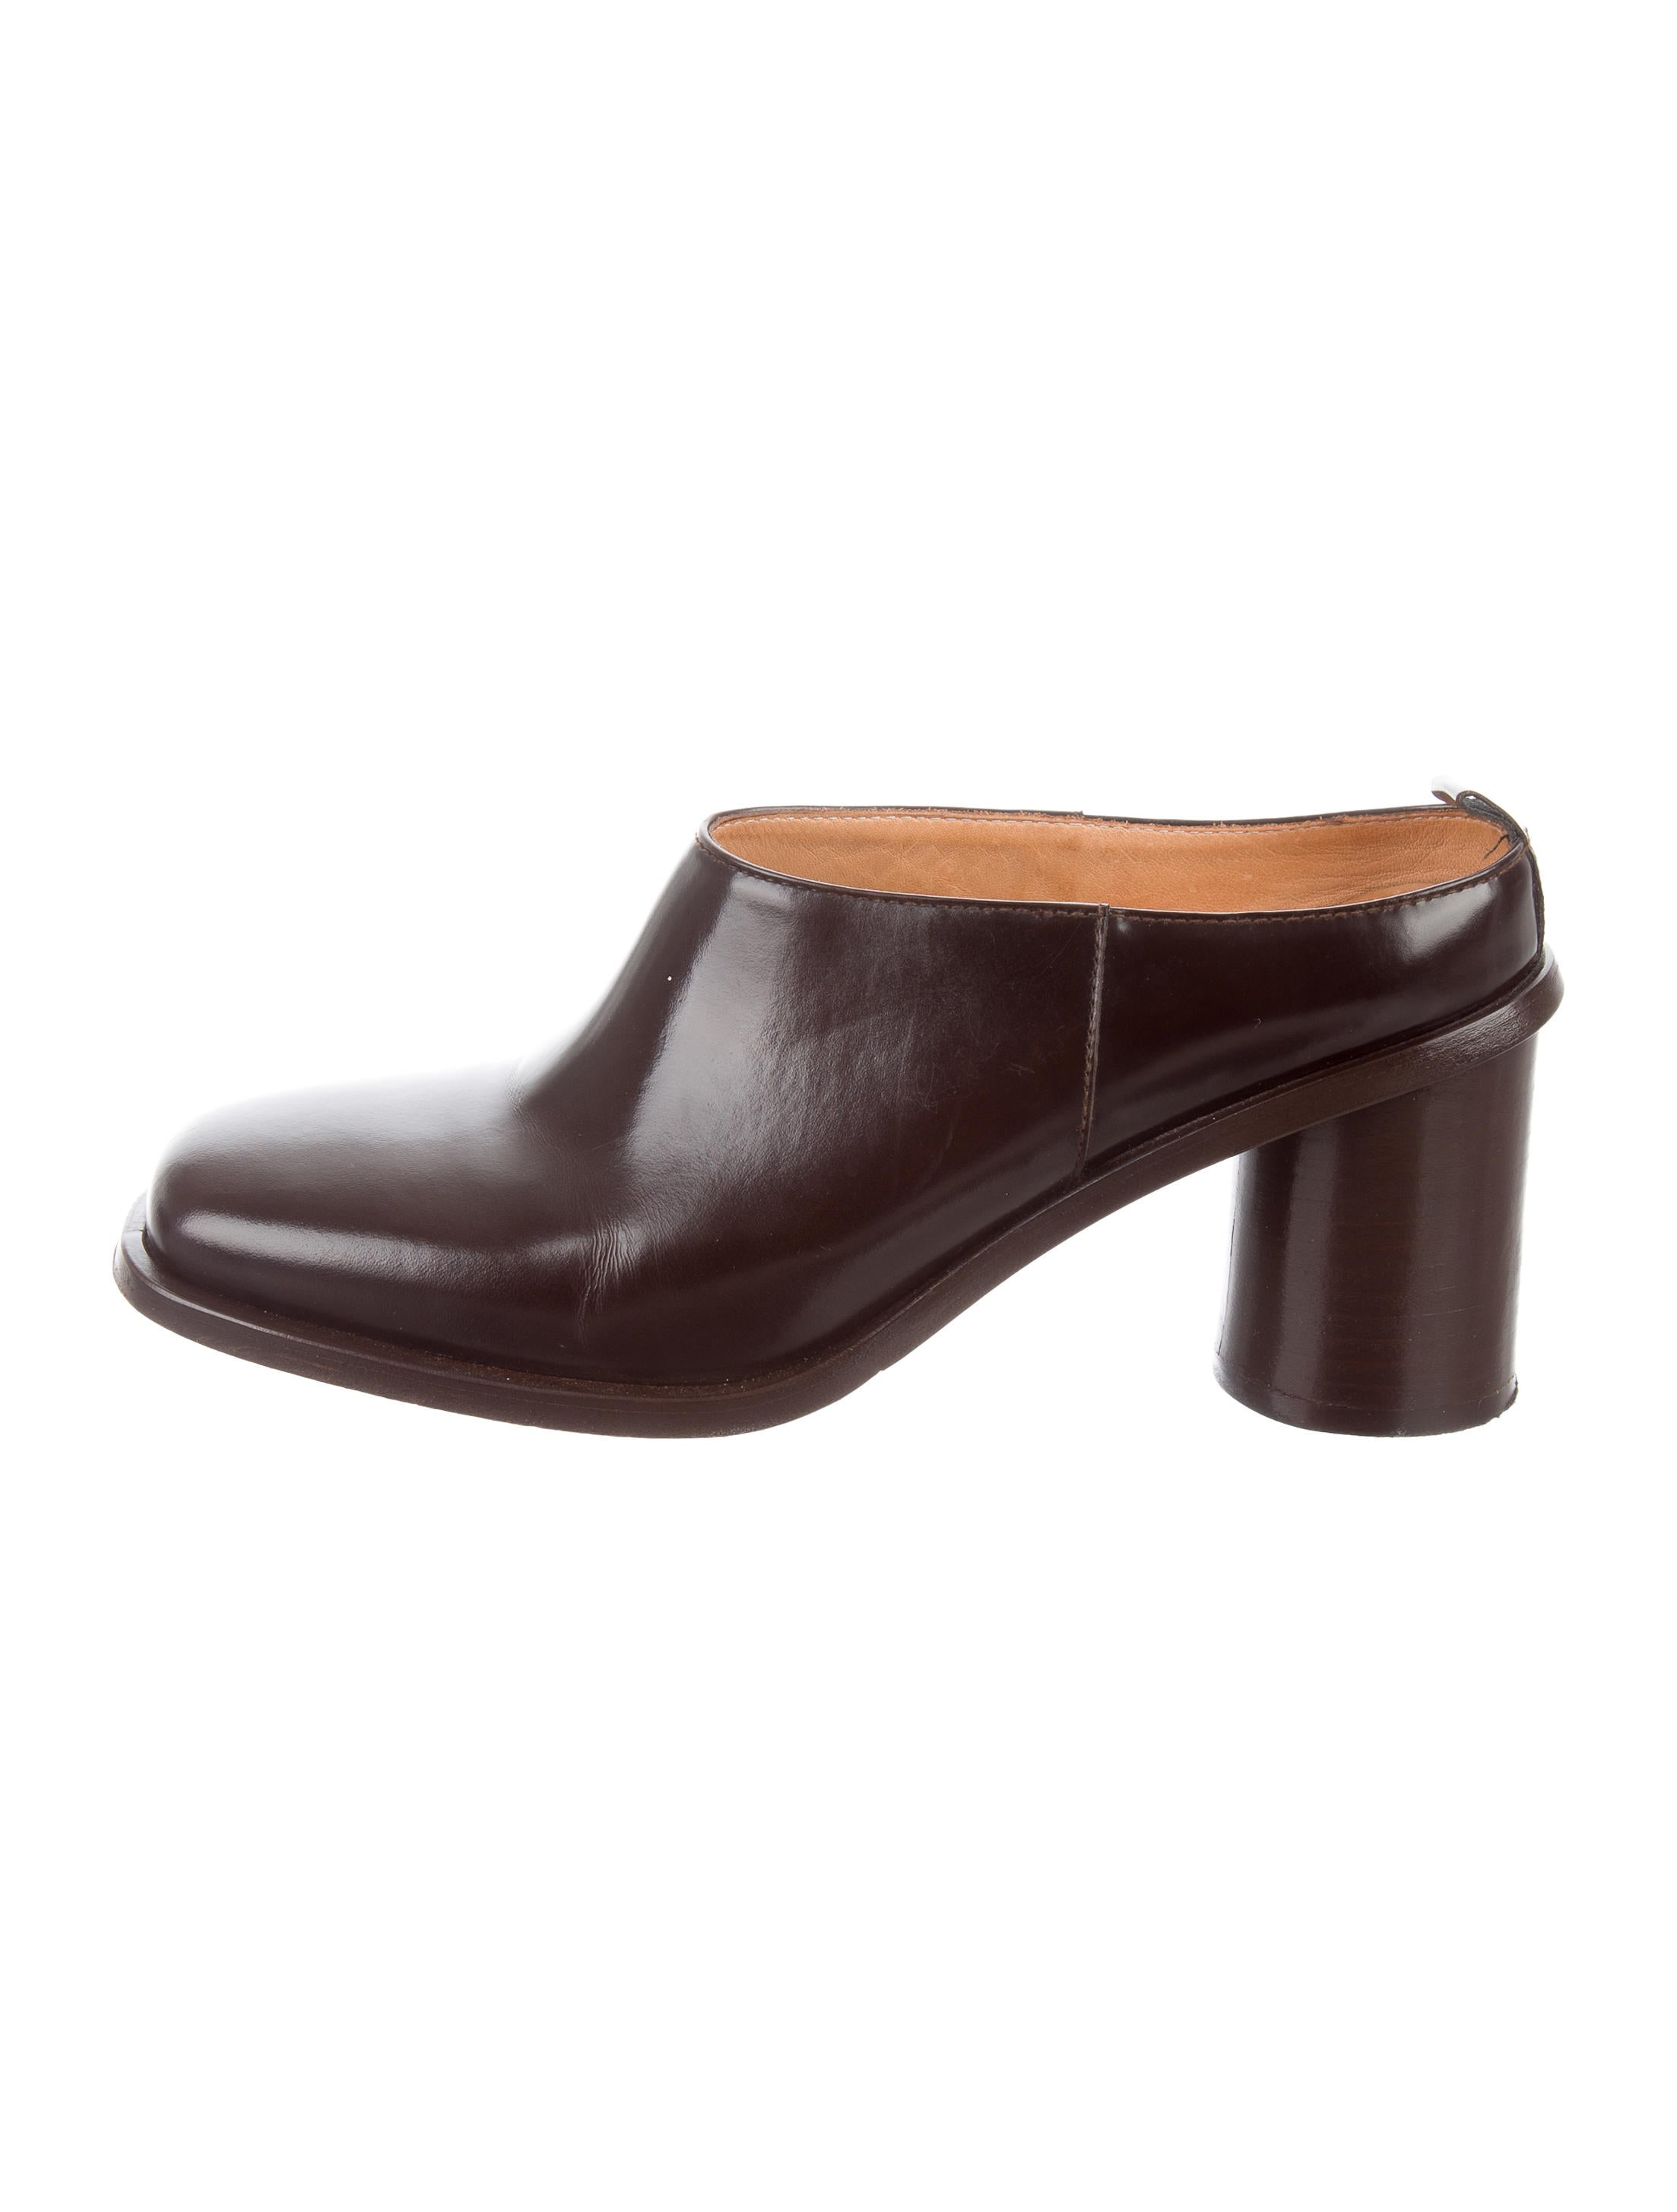 CREATURES OF COMFORT Leather Mules & Clogs 2Ncz6Nk7r